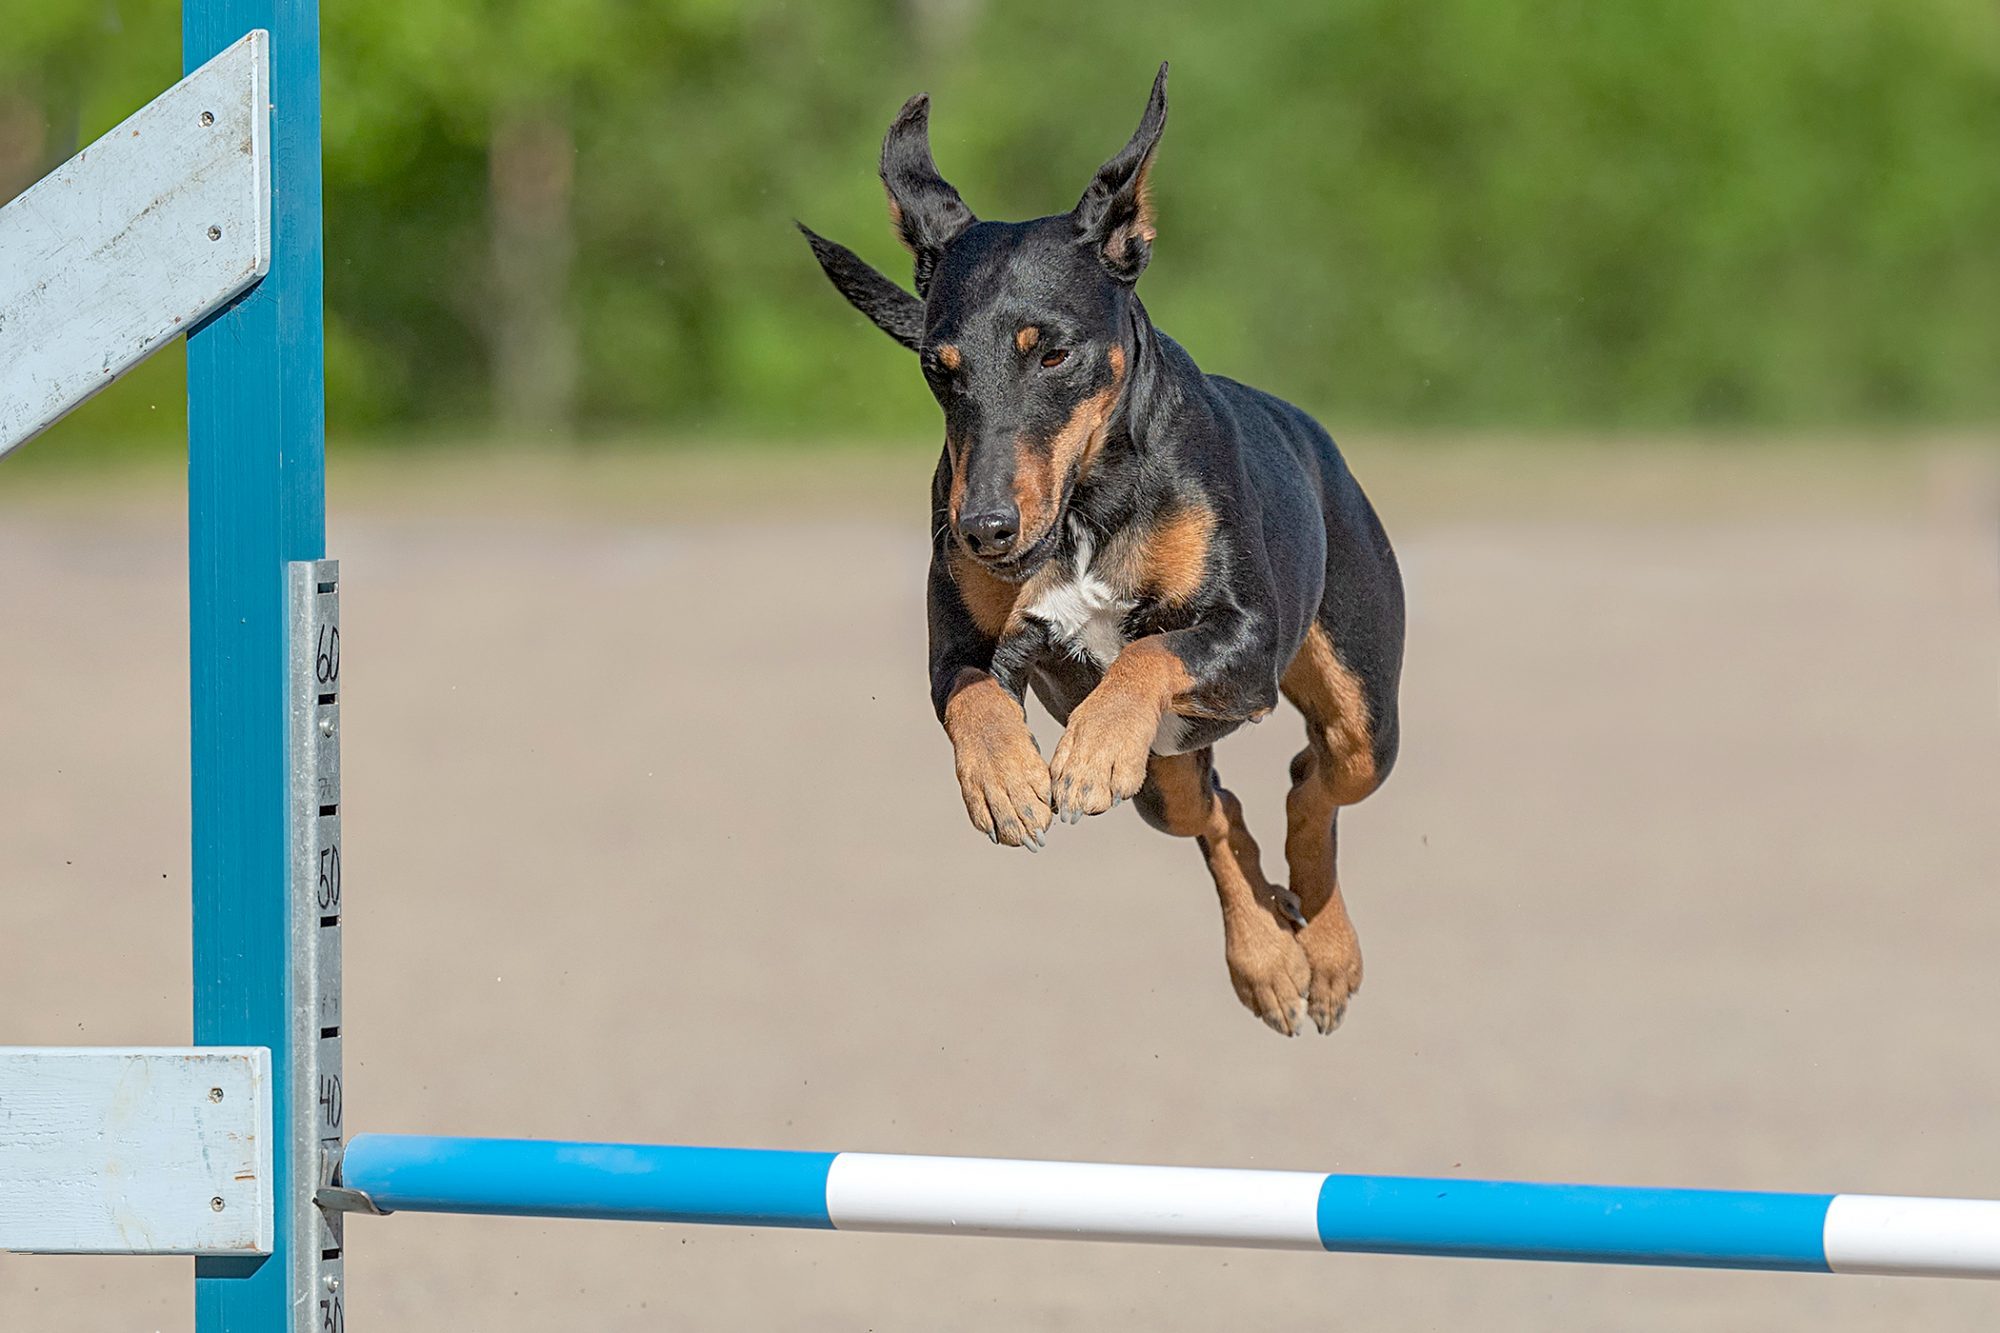 manchester terrier jumping in agility course